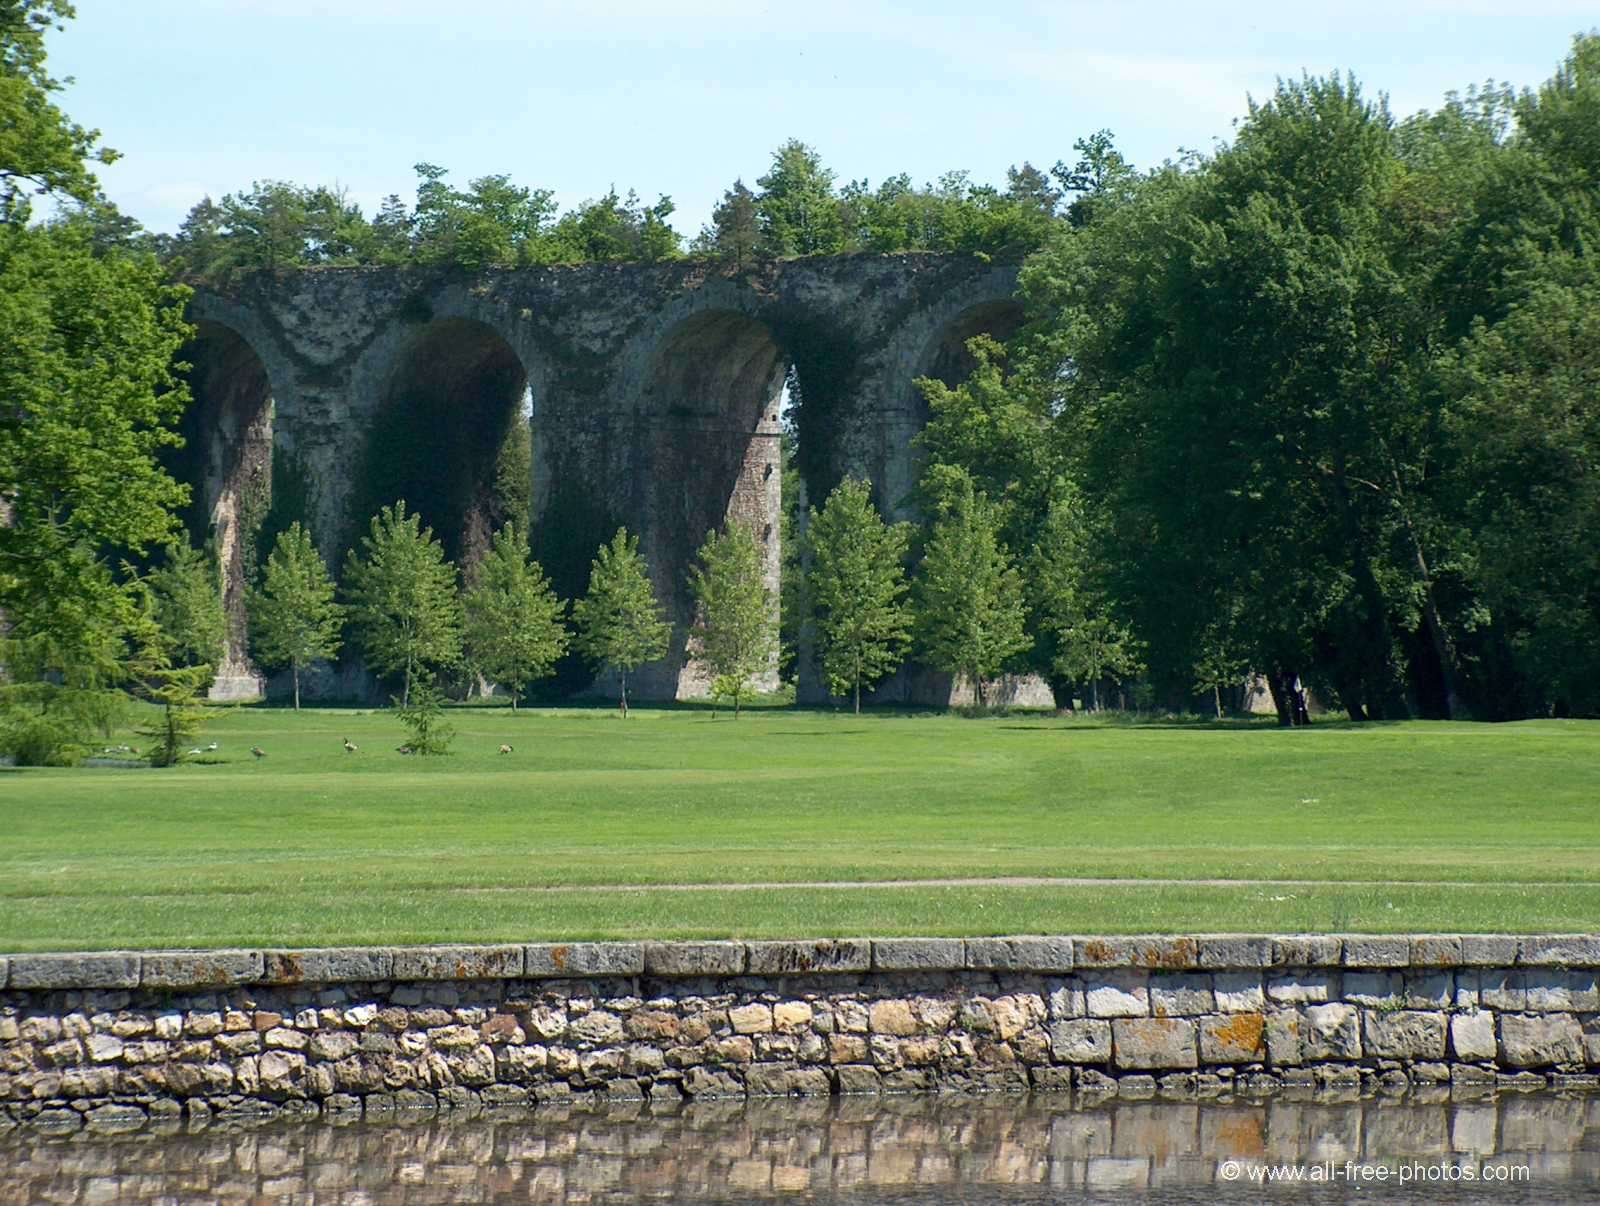 L'aqueduc de Maintenon - France